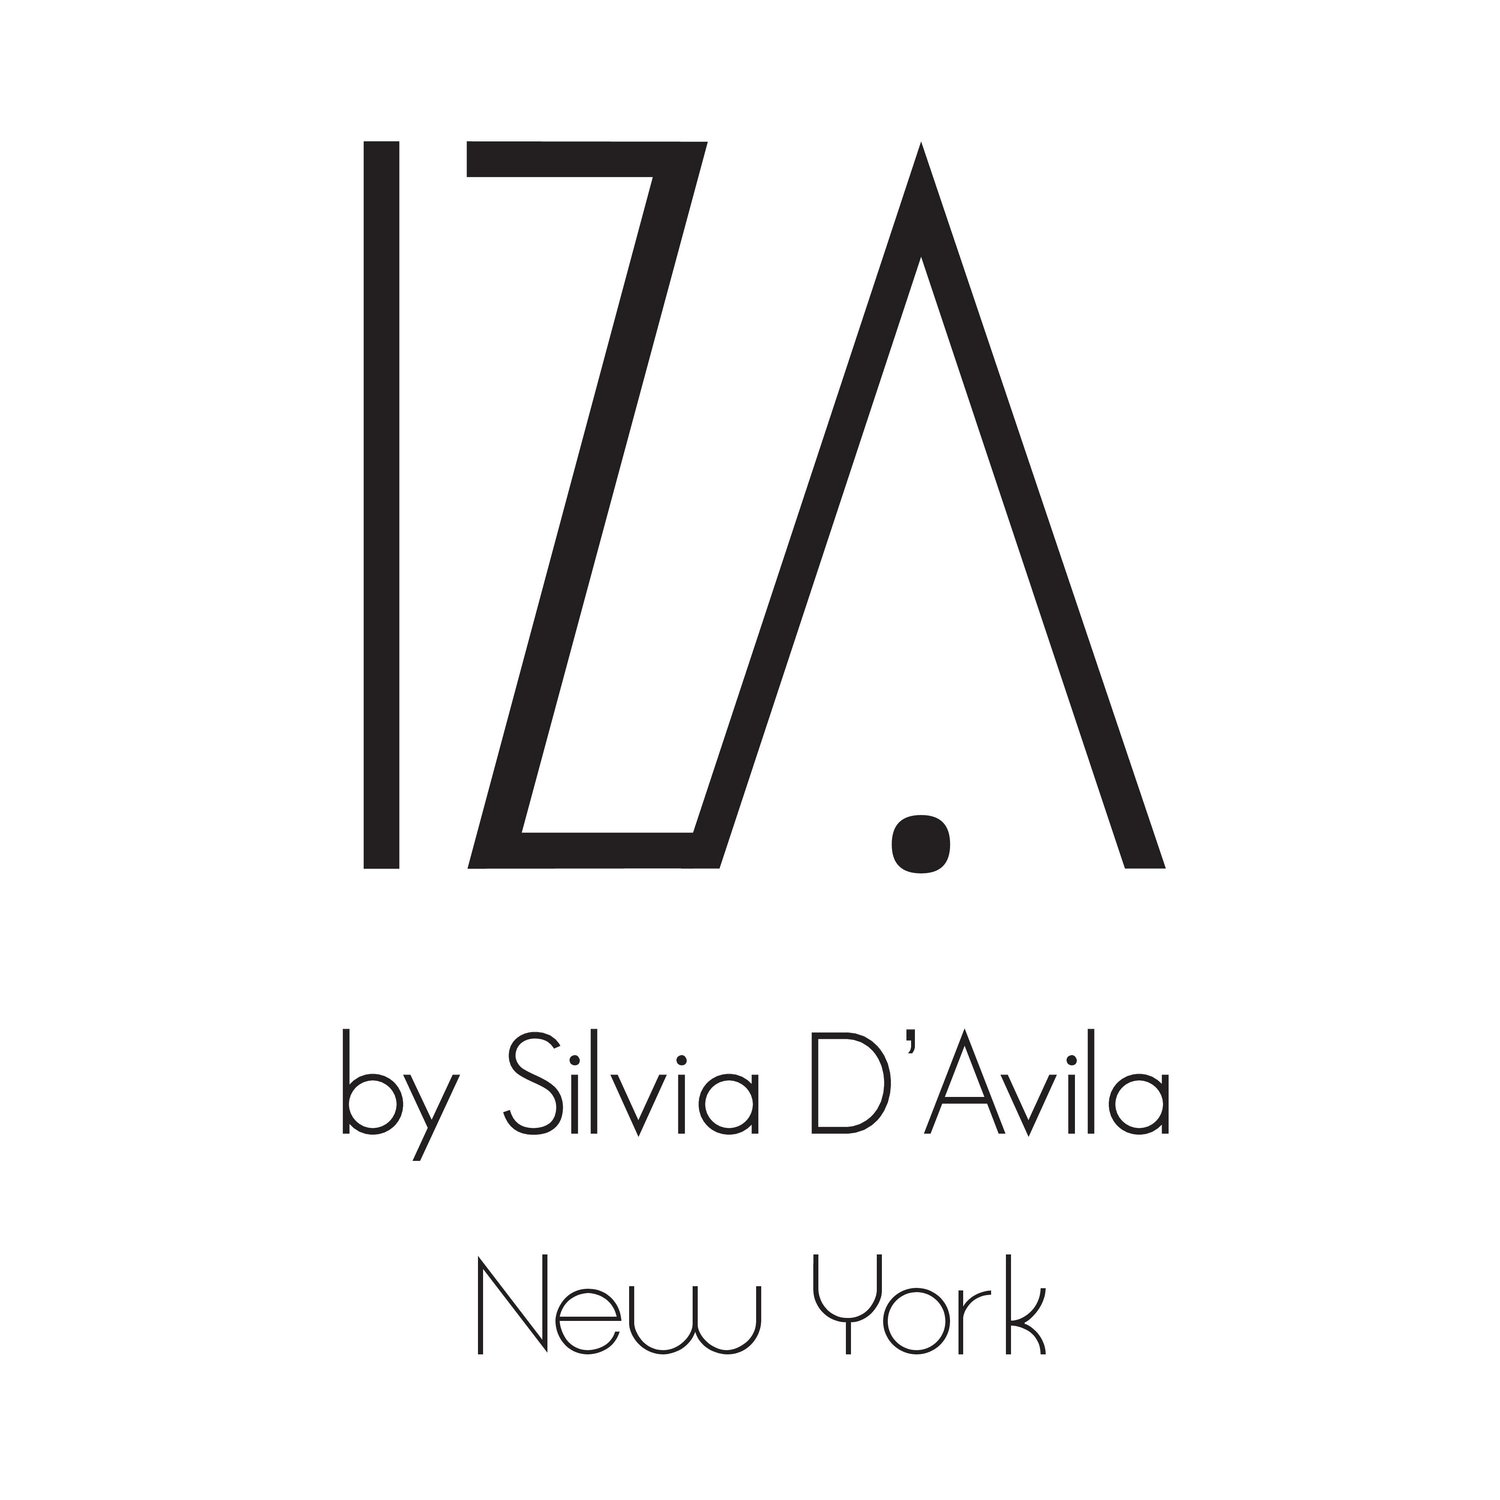 IZA BY SILVIA DAVILA - A handcrafted jewelry brand that inspires elegance in everyday life while empowering women.